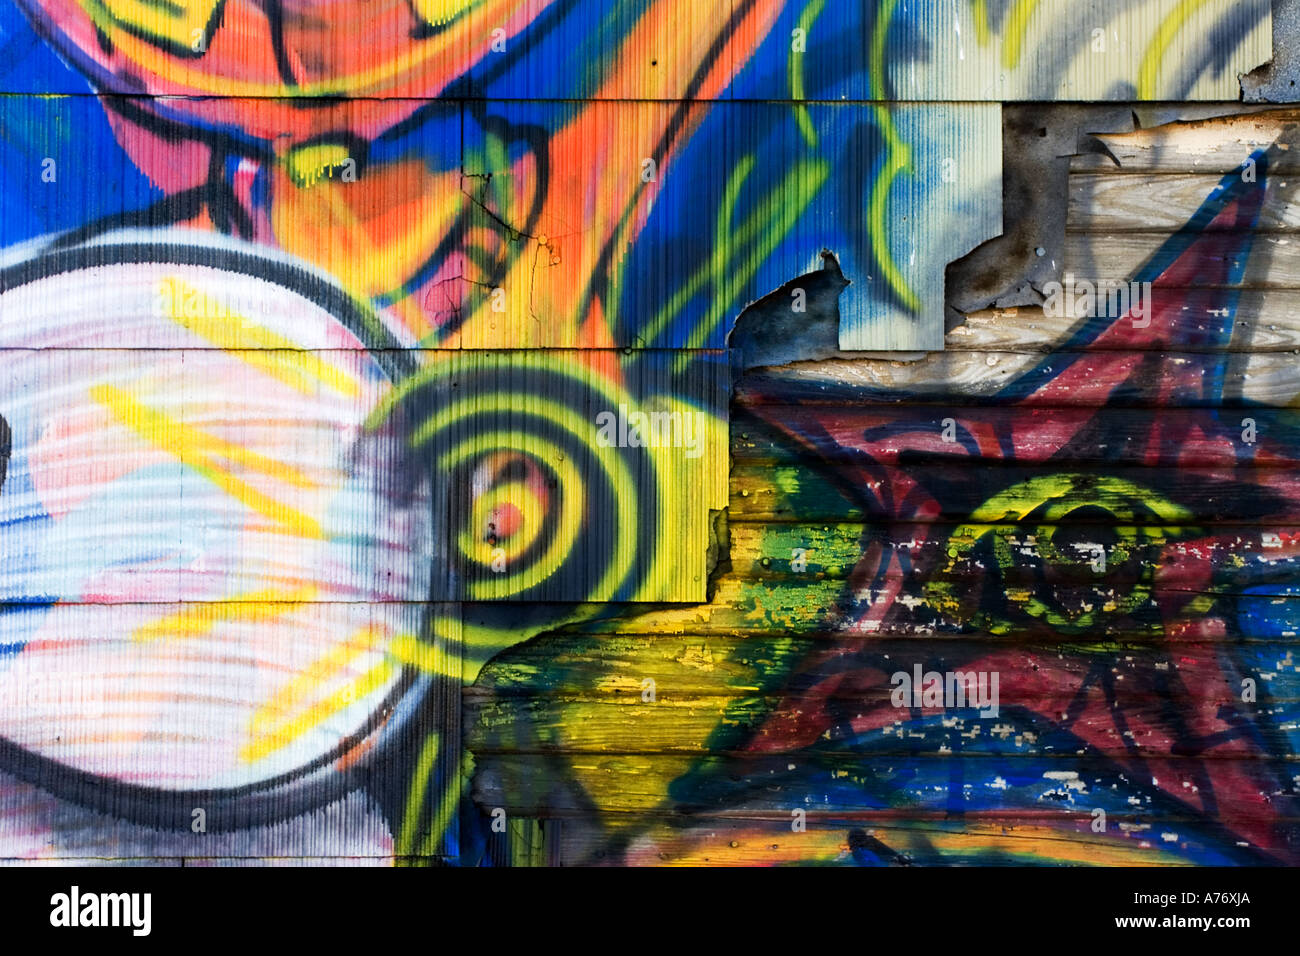 Graffiti wall painting - Stock Photo Wall Painting Shake Multi Color Street Art Graffiti